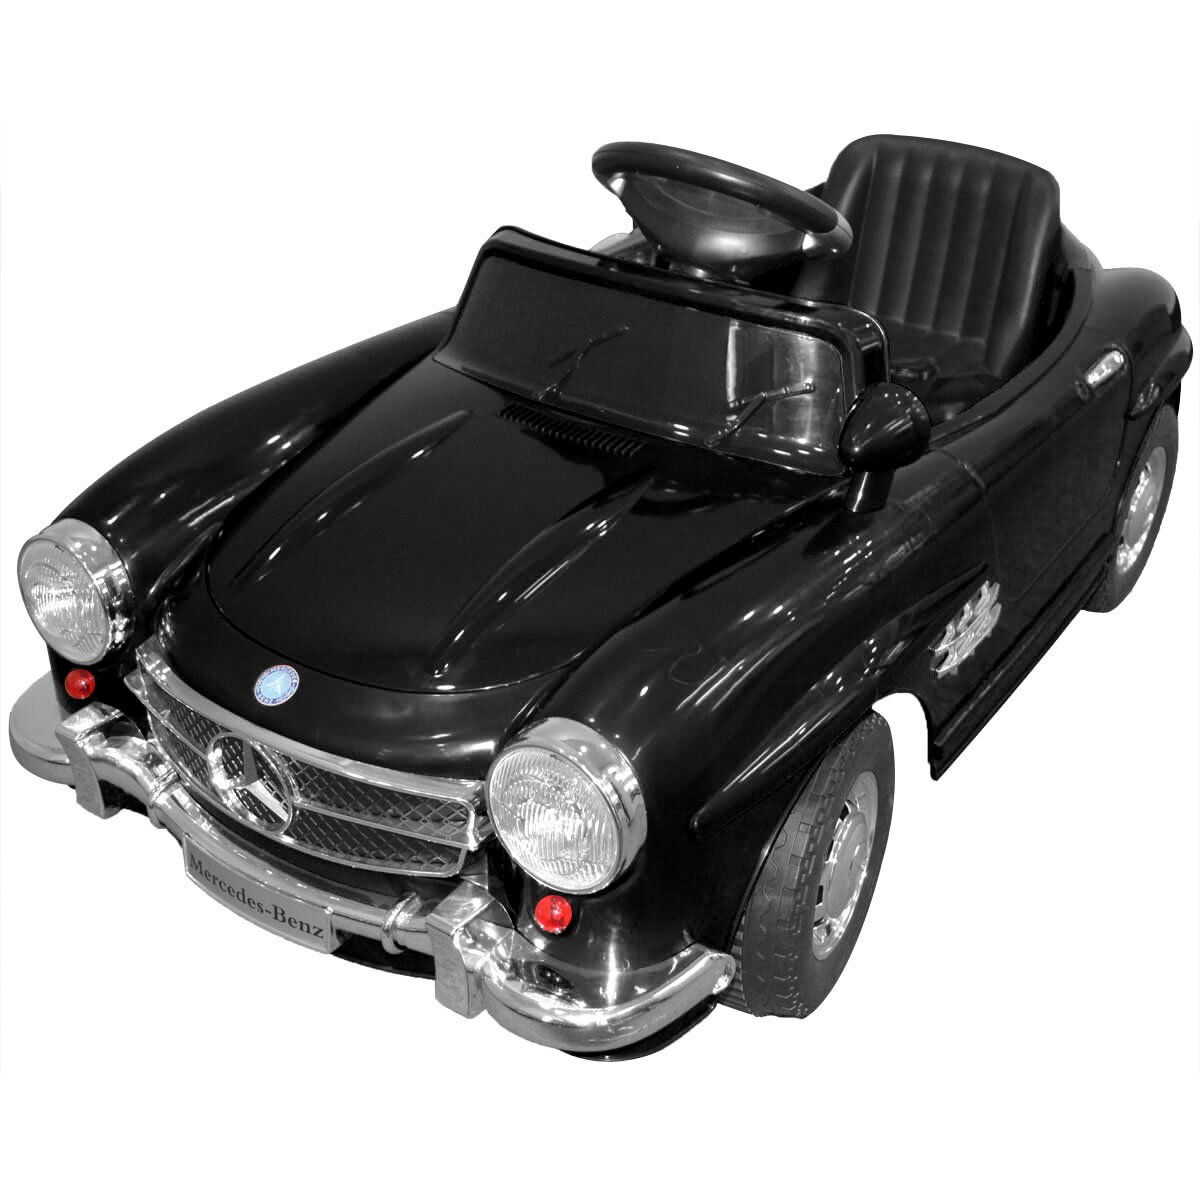 Gymax Mercedes Benz 300SL AMG Children Toddlers Ride on Car Electric Toy Black